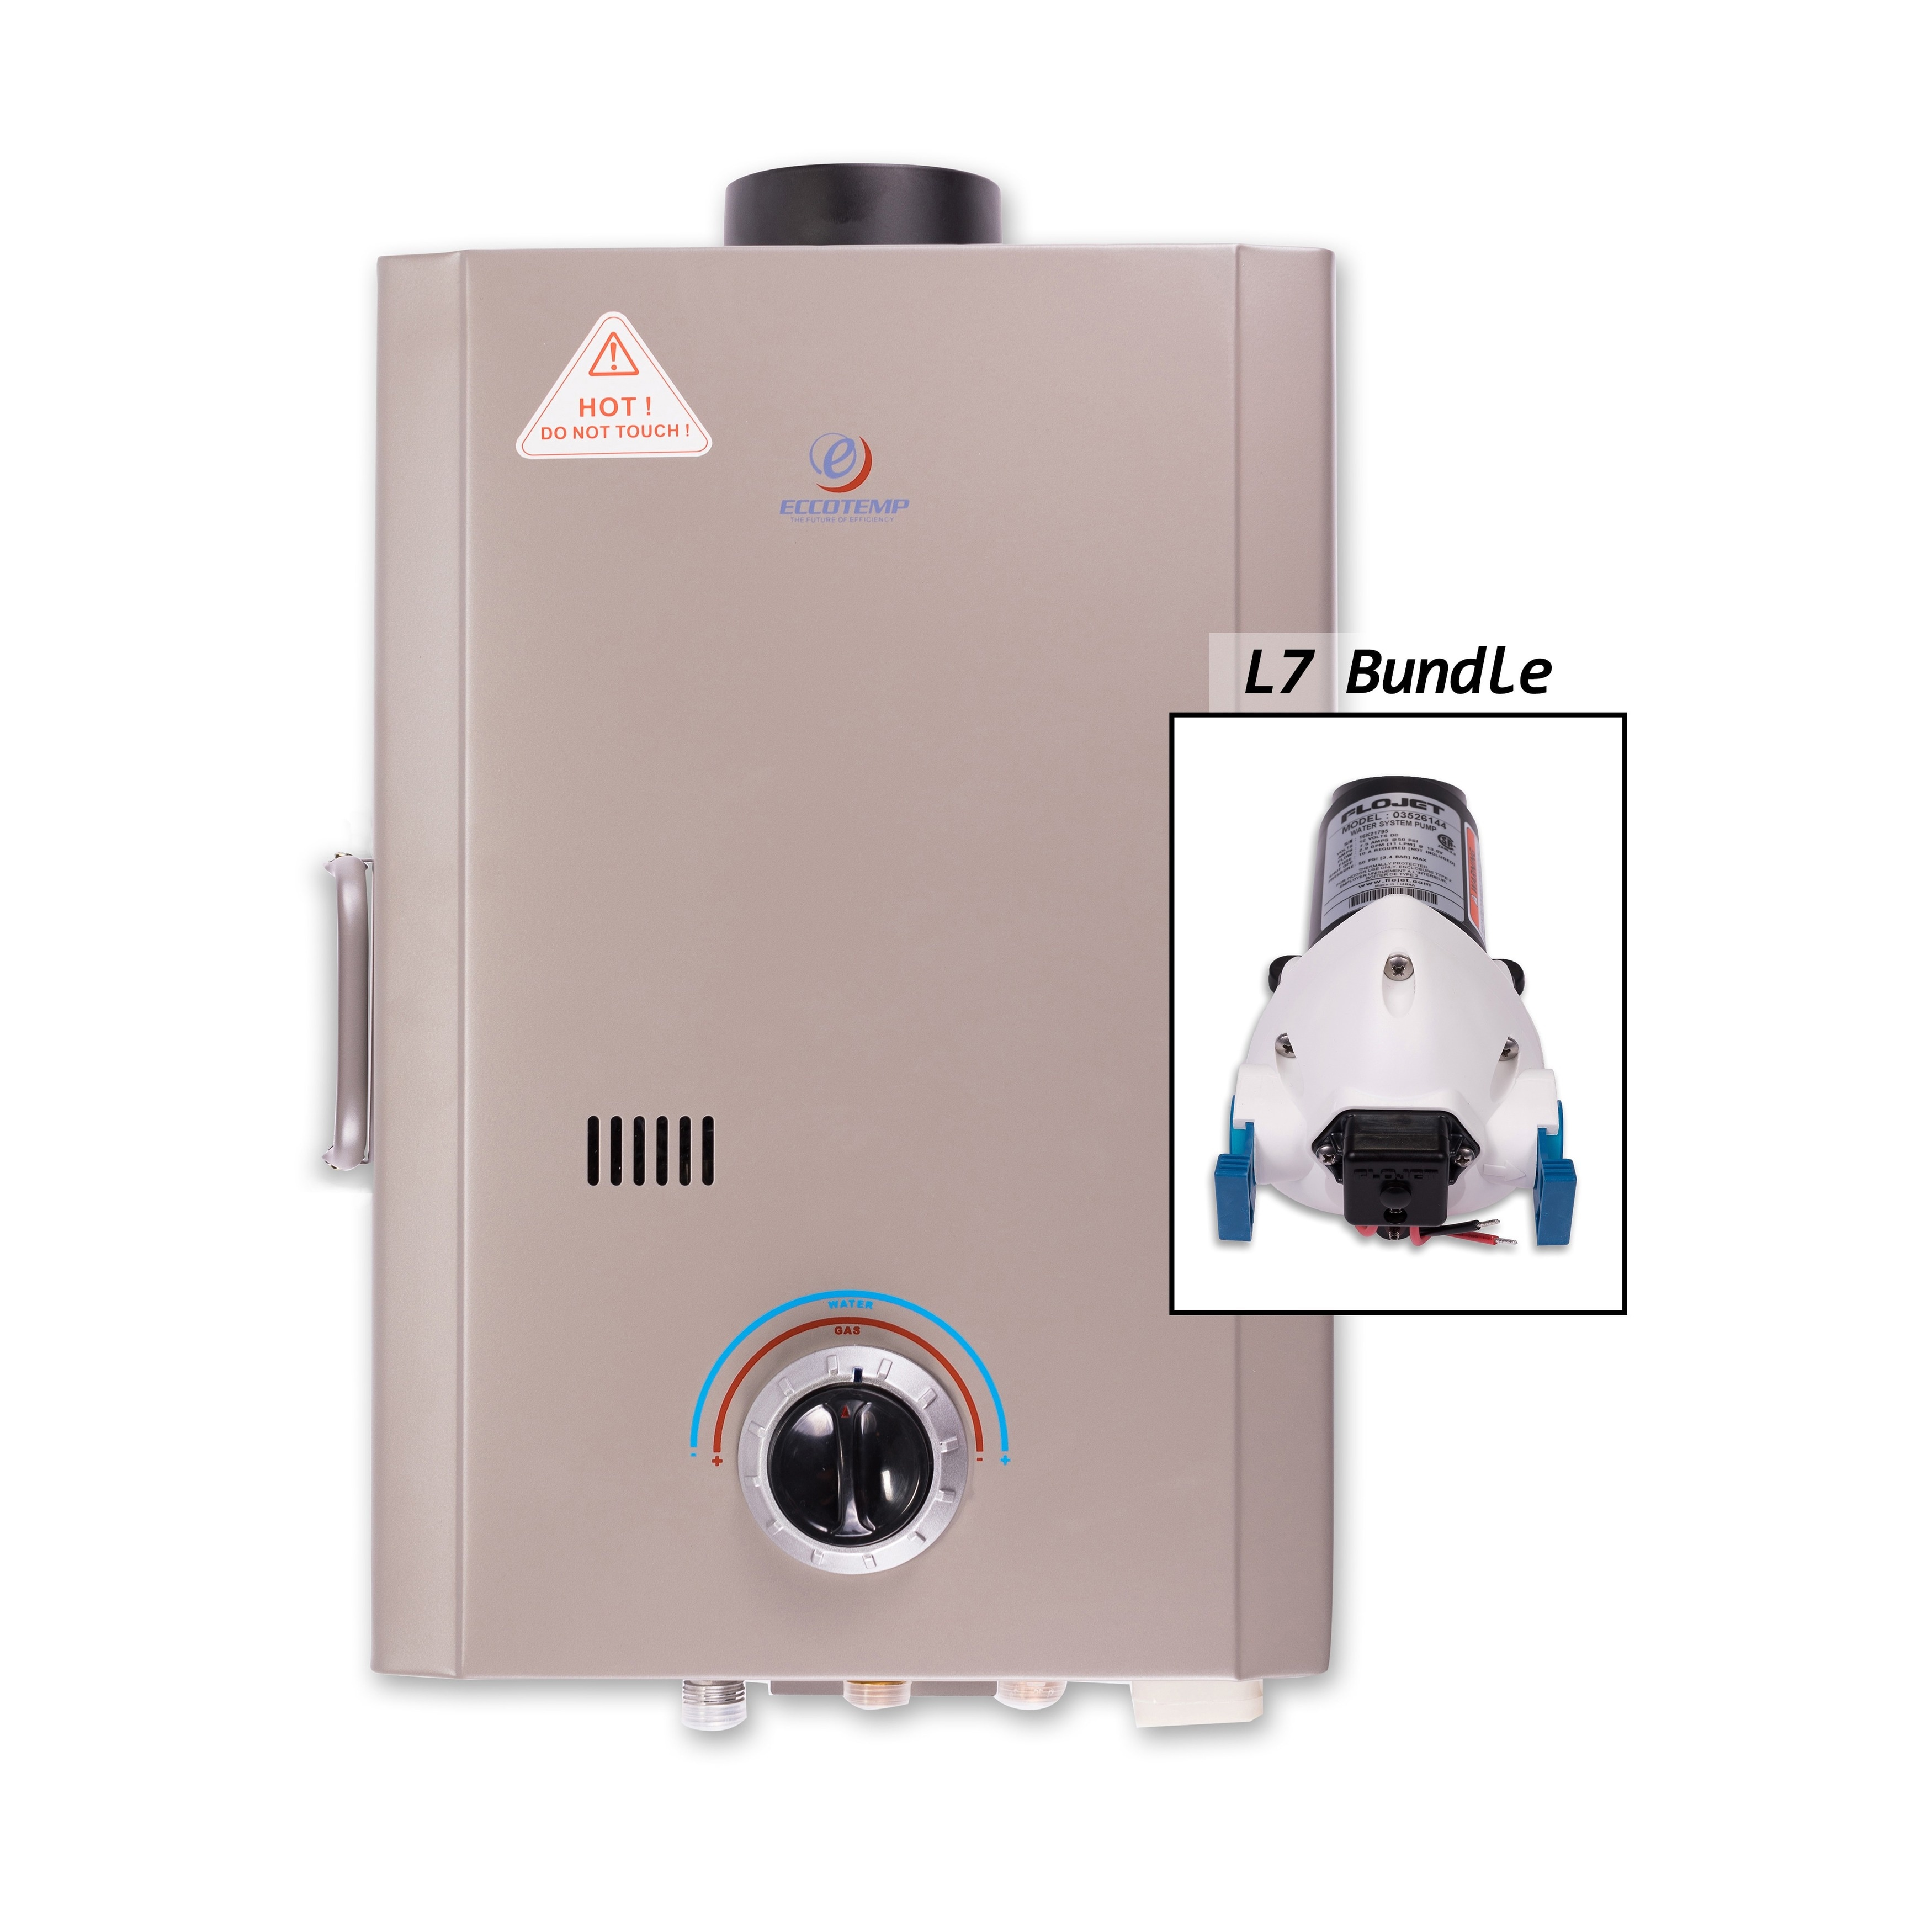 Eccotemp L7 Tankless Water Heater with Flojet Pump (White...